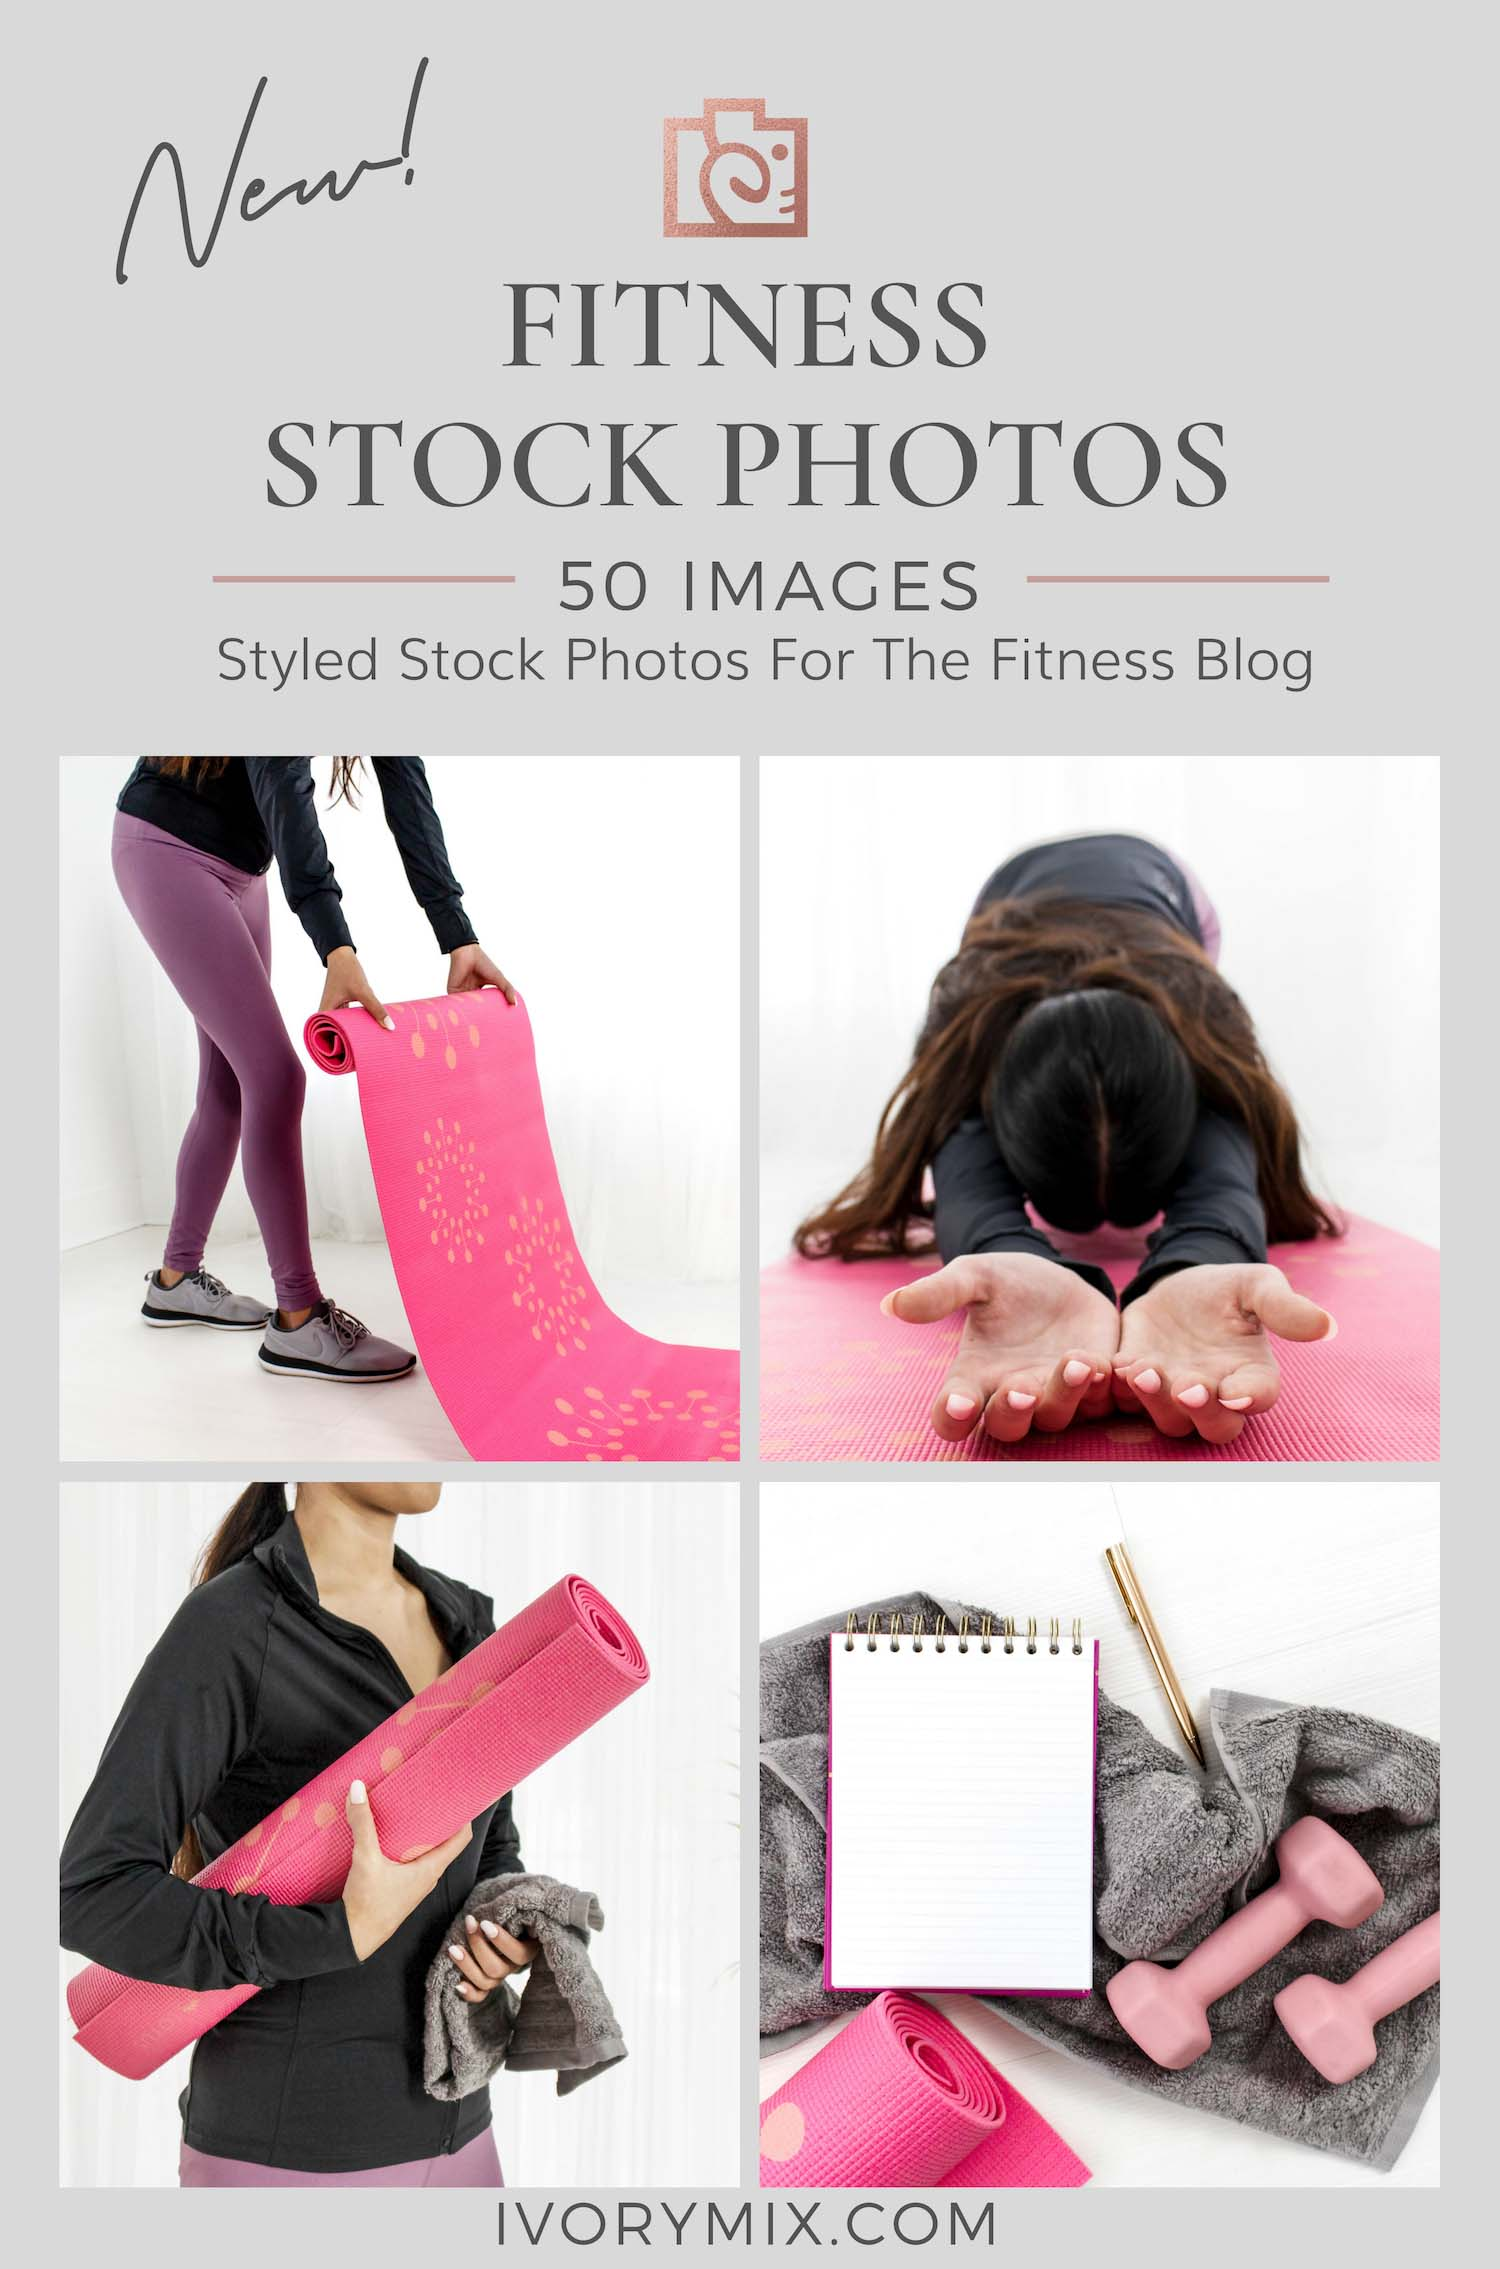 Fitness yoga stock photos from Ivory Mix